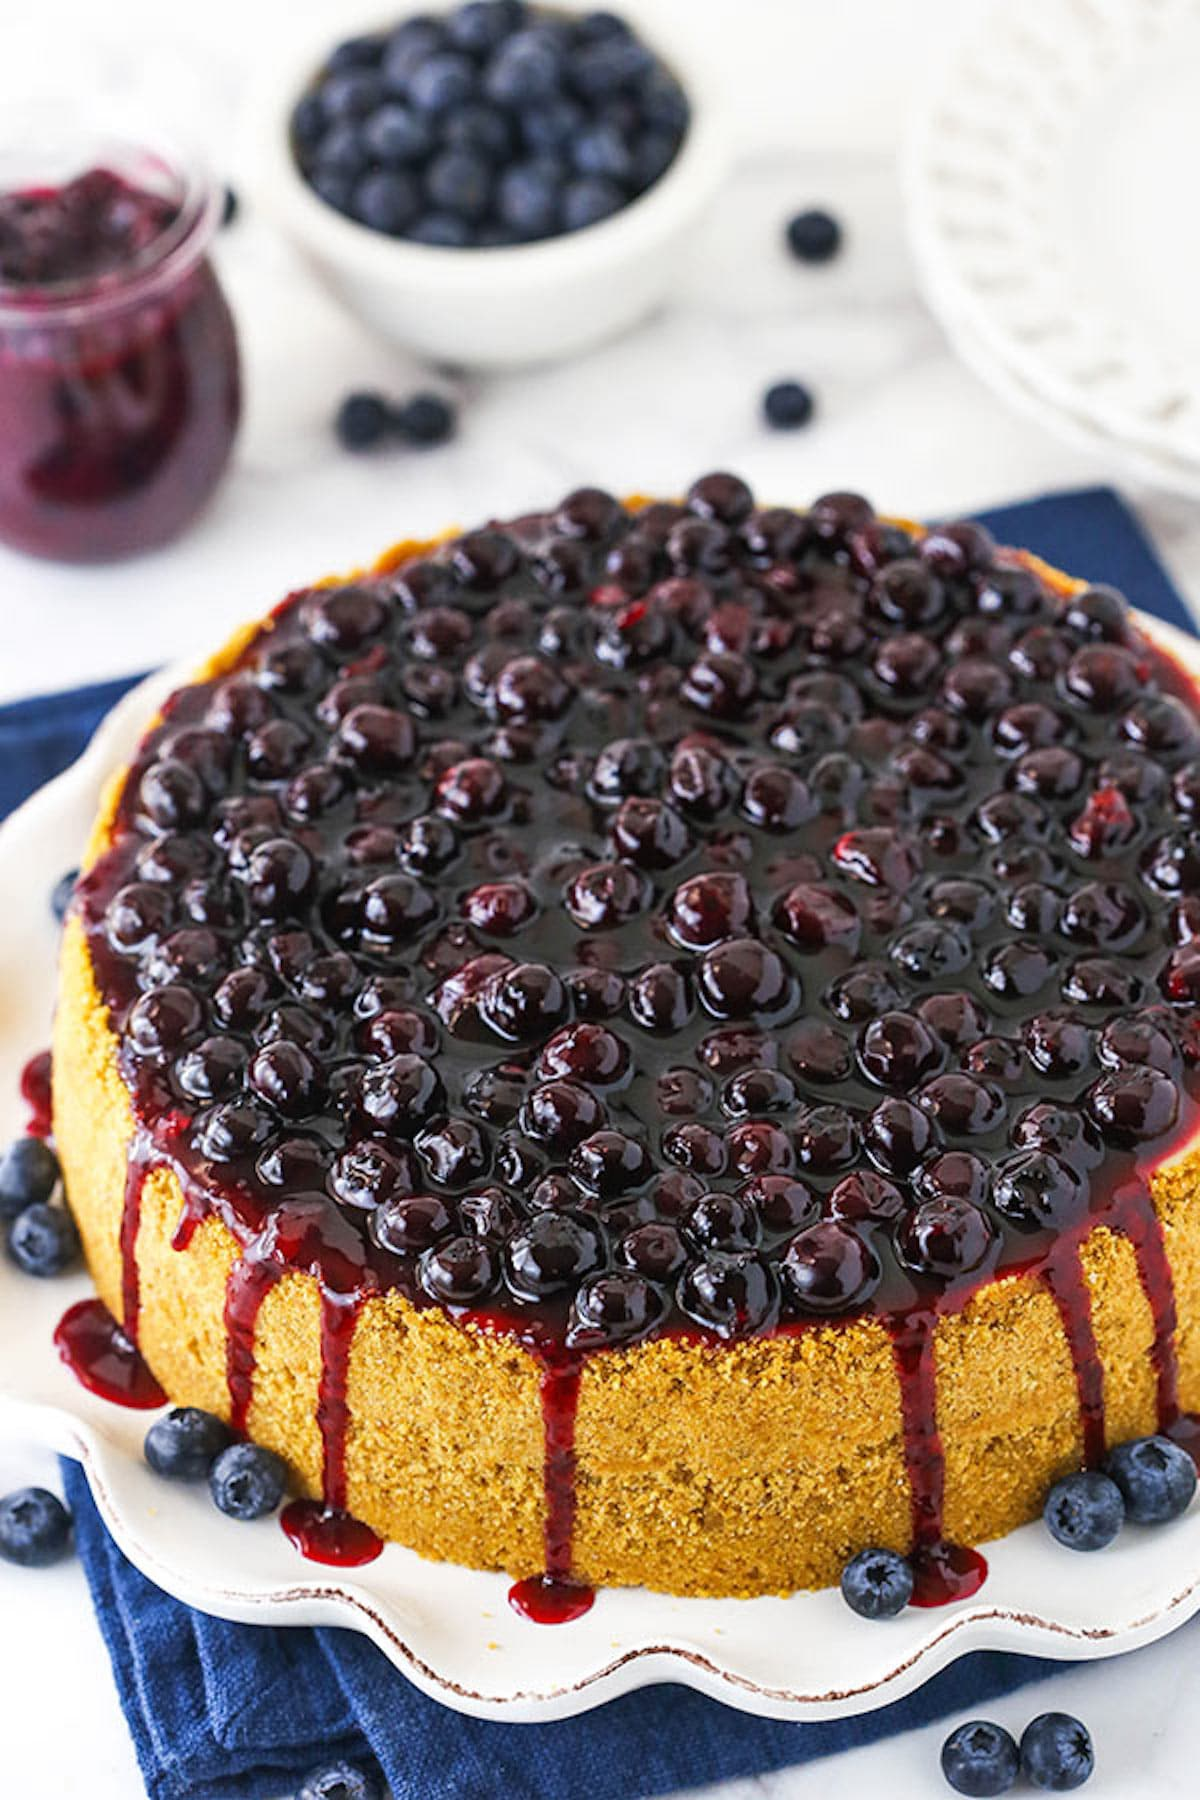 The Top View of a Blueberry Cheesecake with Sauce Dripping Down the Sides of the Cake